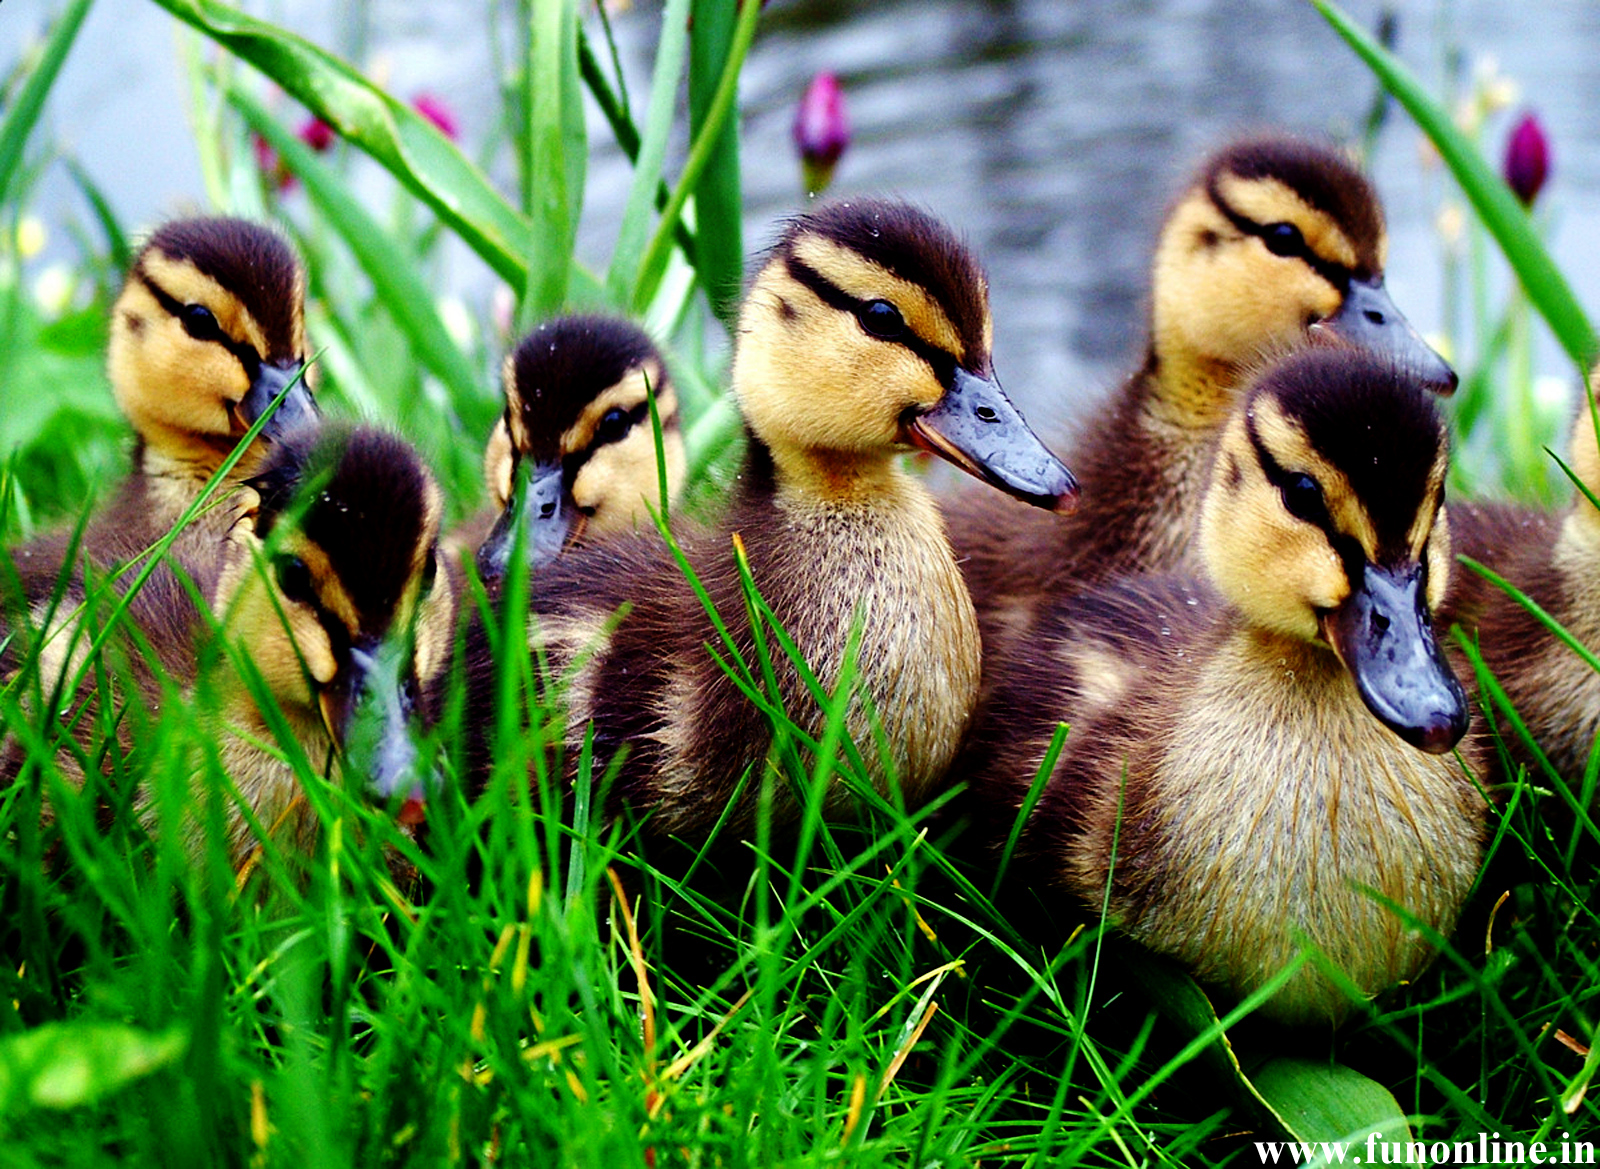 Cute Baby Duck Wallpaper – Free wallpaper download